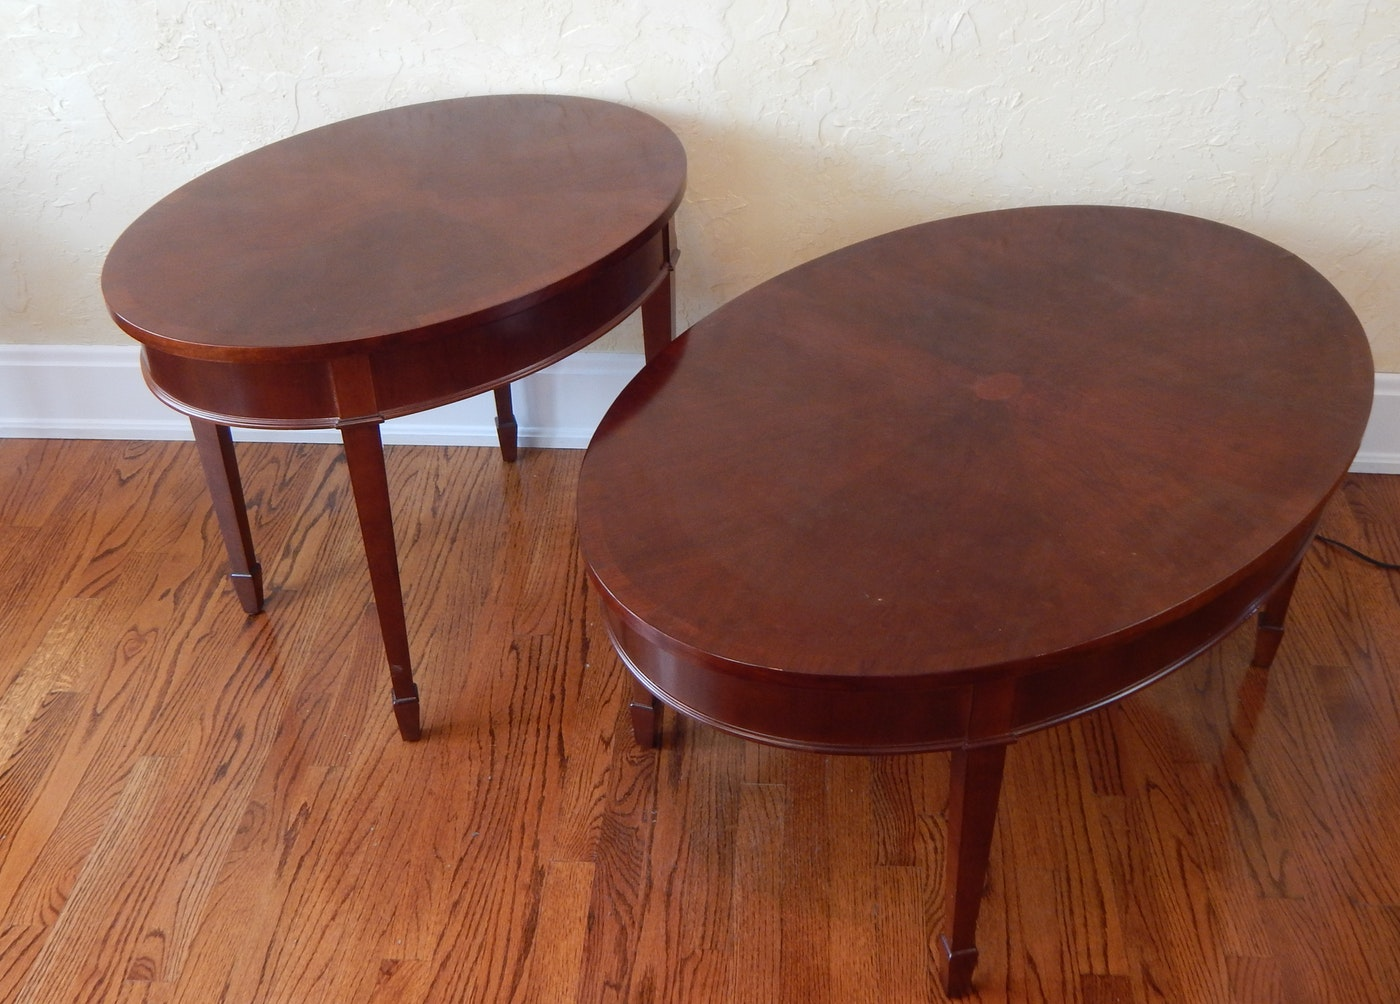 Two Bombay Company Oval Tables Ebth